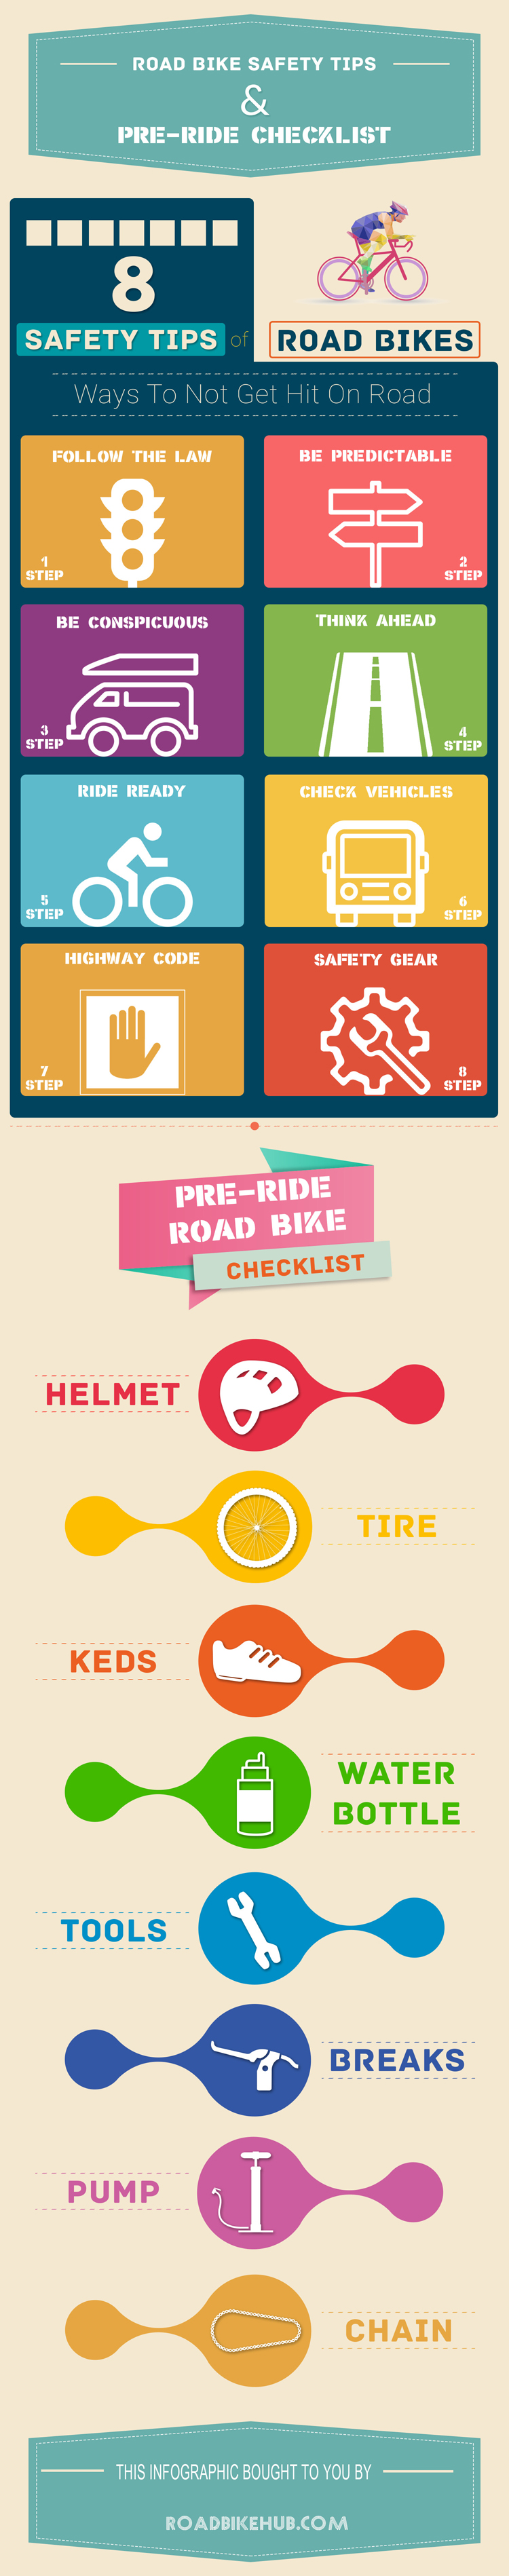 8 Safety Tips For Road Bikers And Pre-riding Checklist